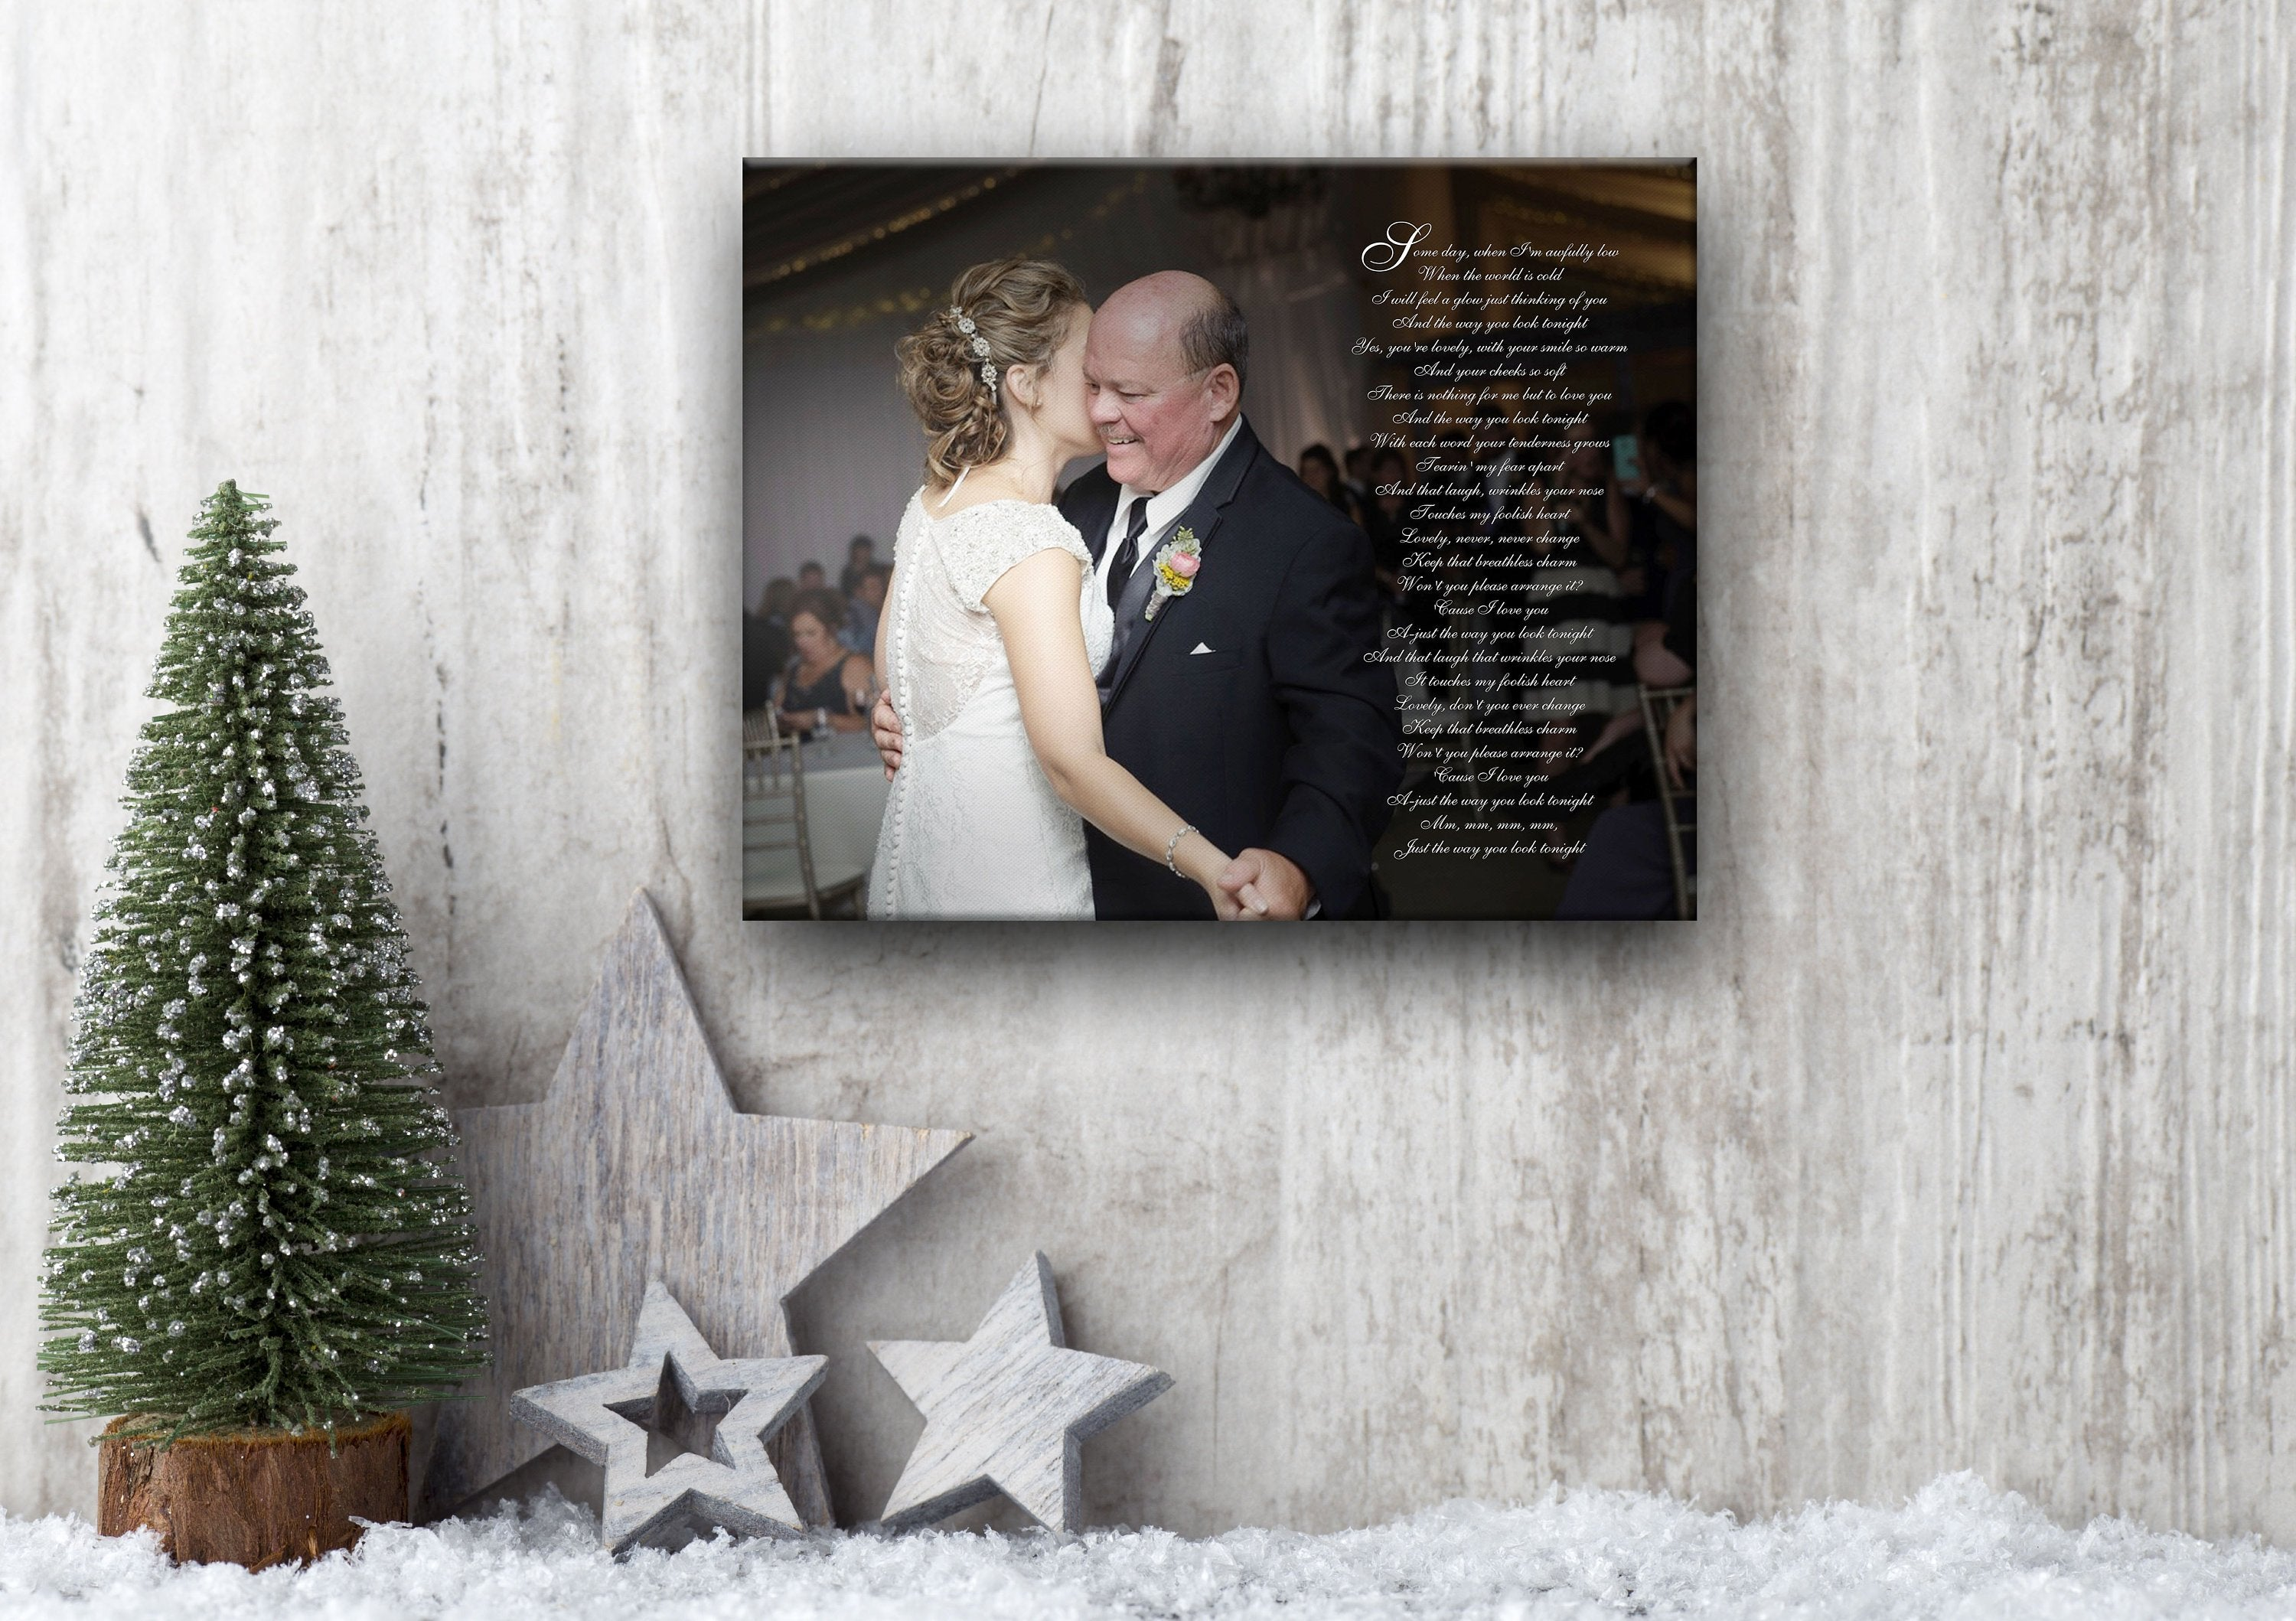 Personalized Father Daughter Photo Canvas – Honeycomb Proverbs